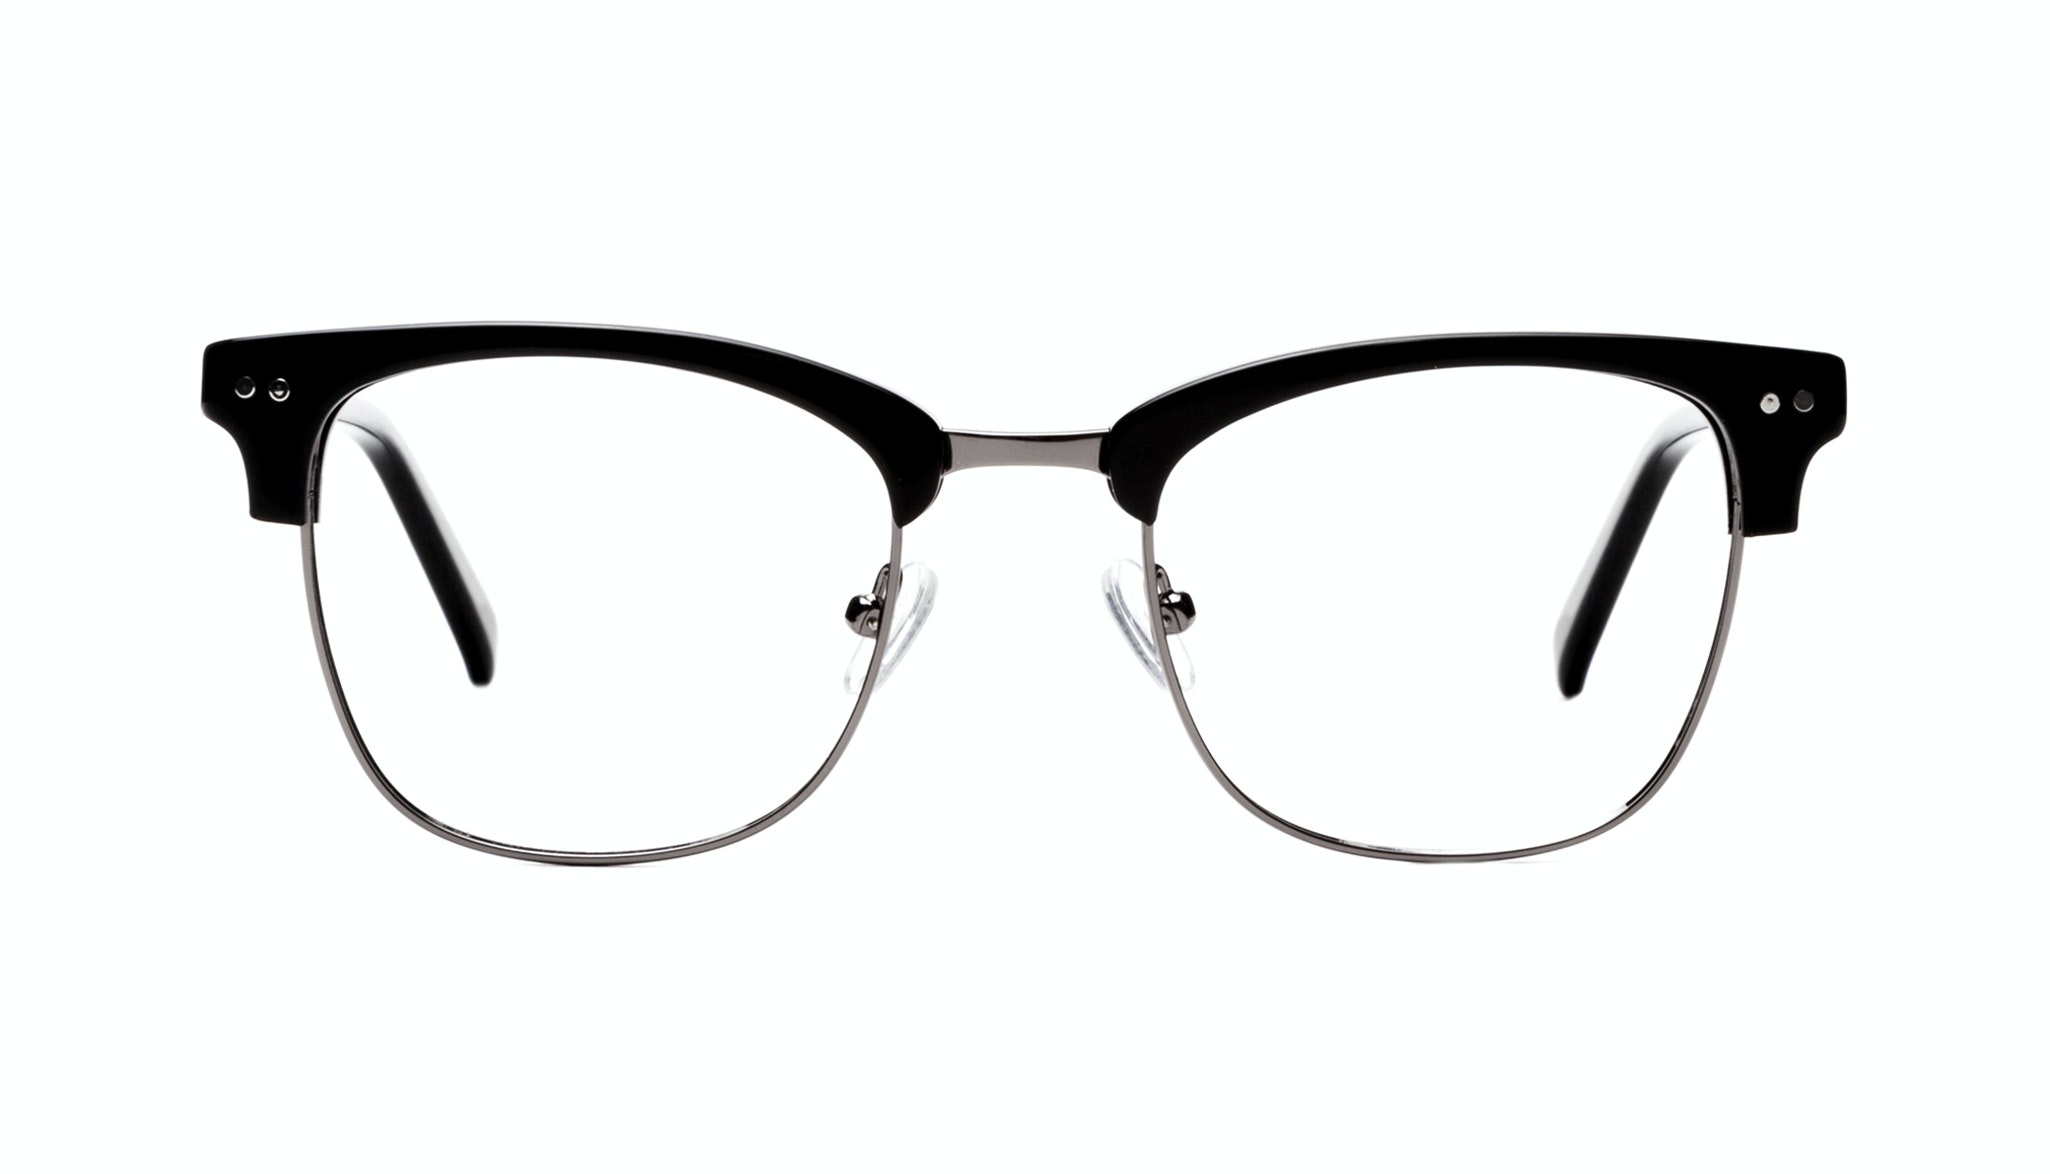 Affordable Fashion Glasses Square Eyeglasses Men Women Lift Onyx